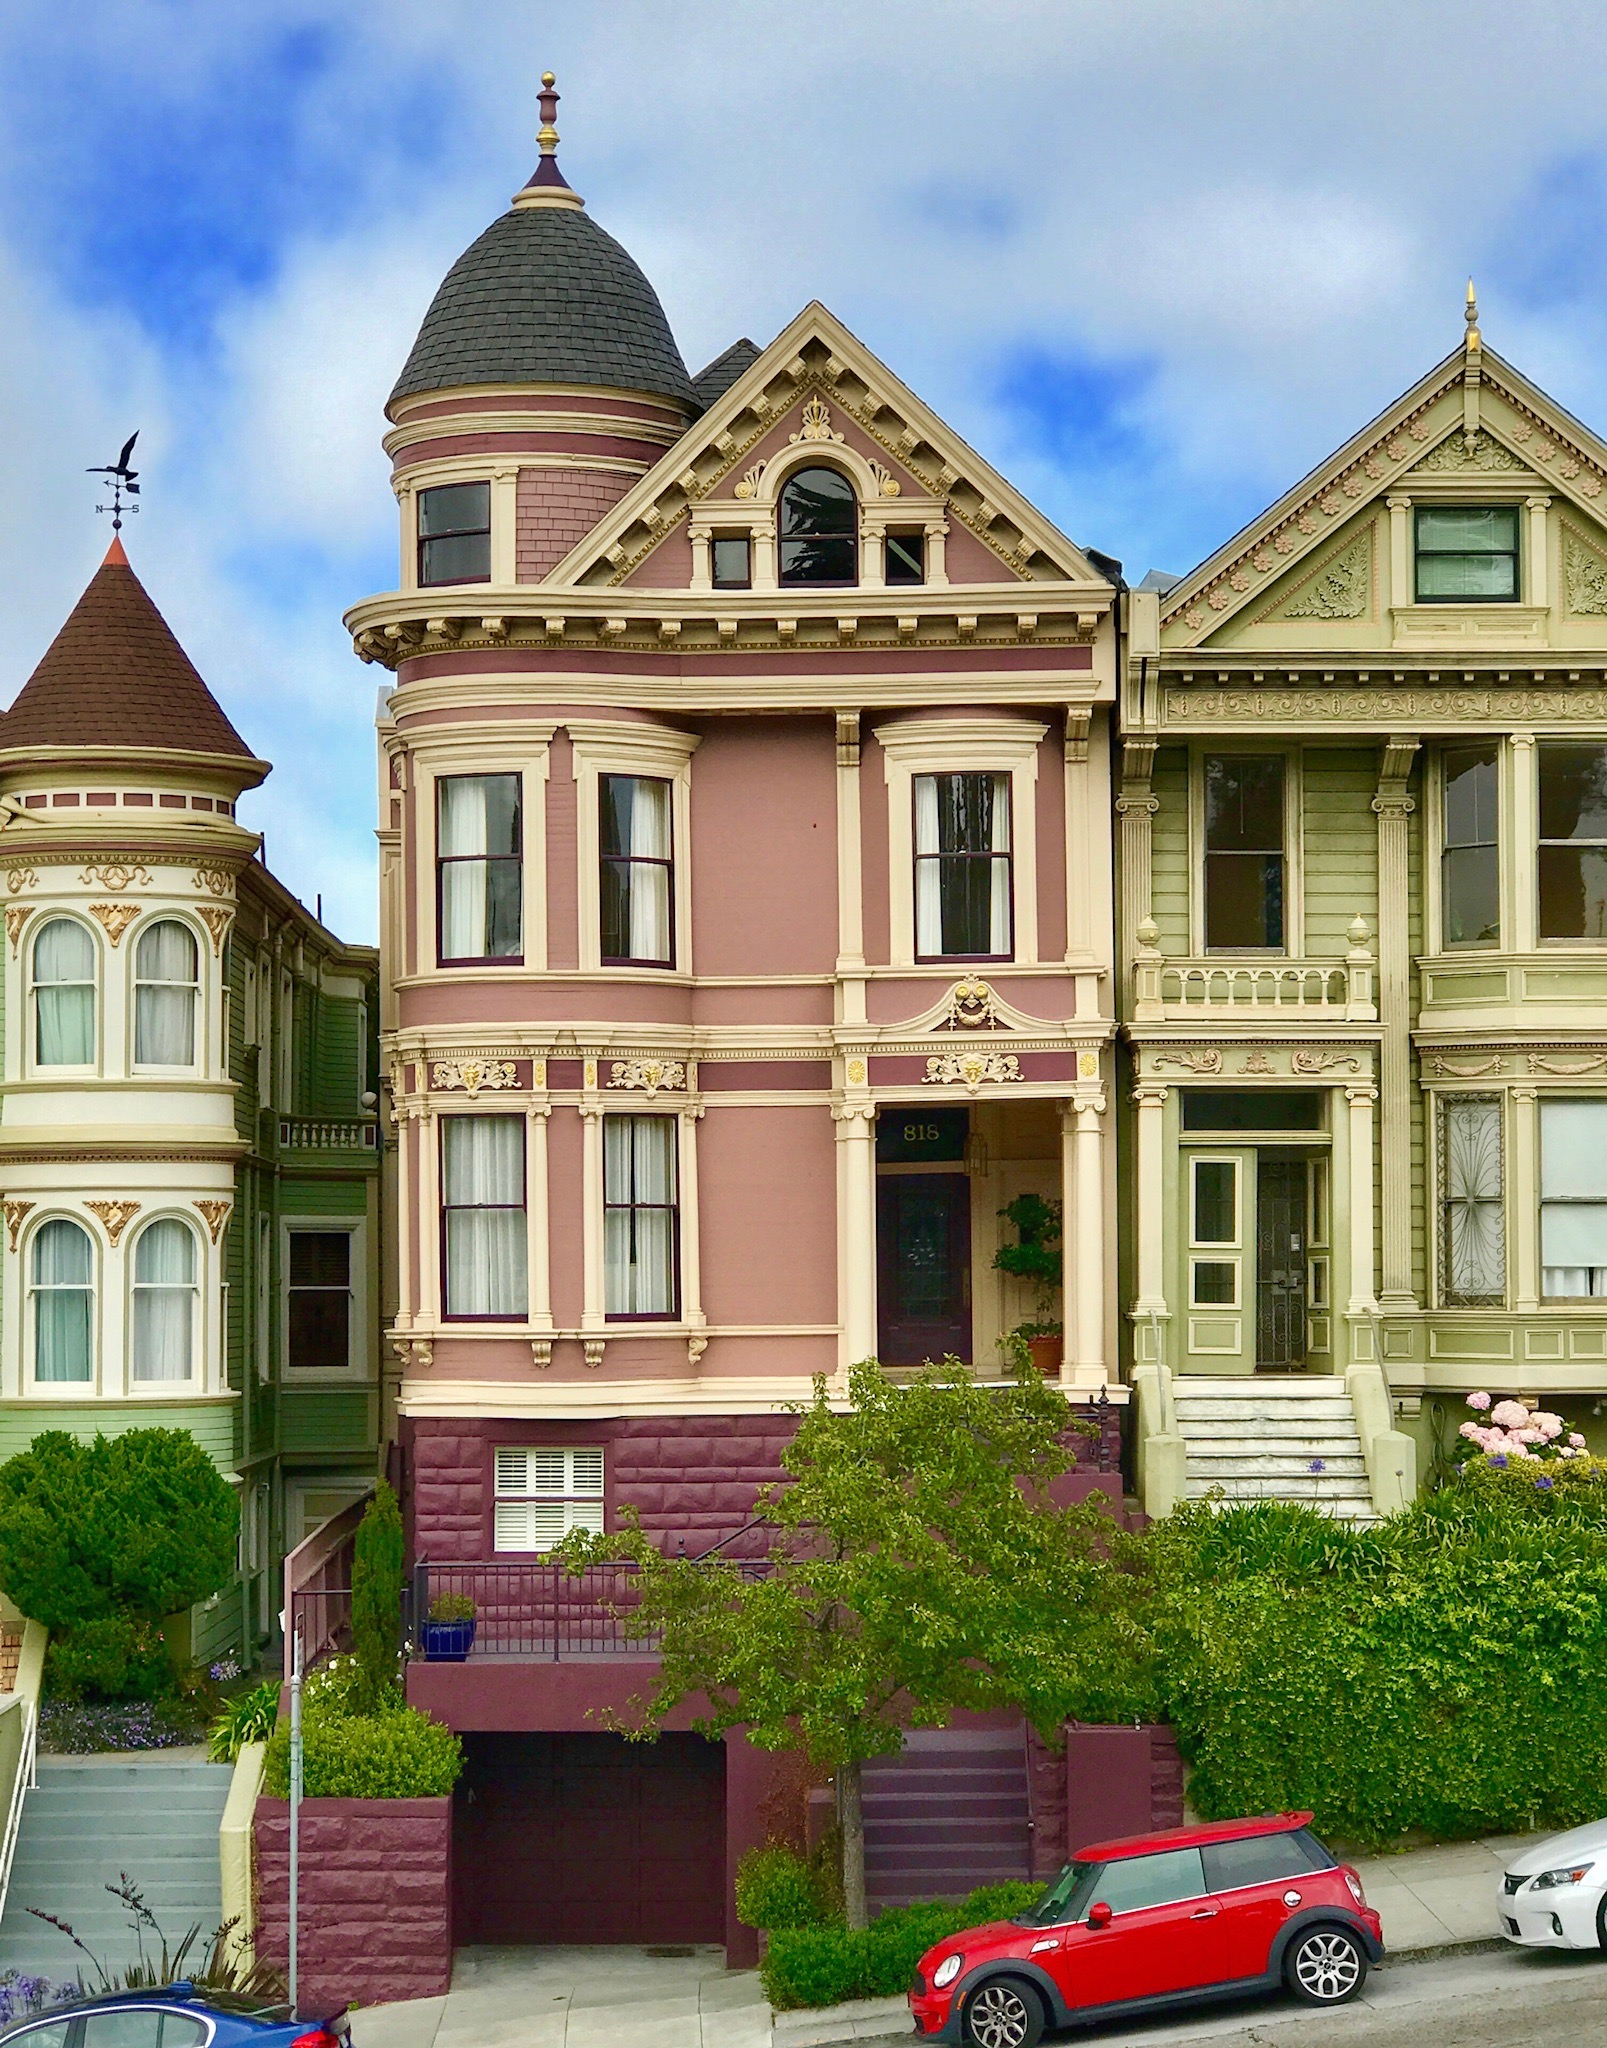 paintedladies.jpeg